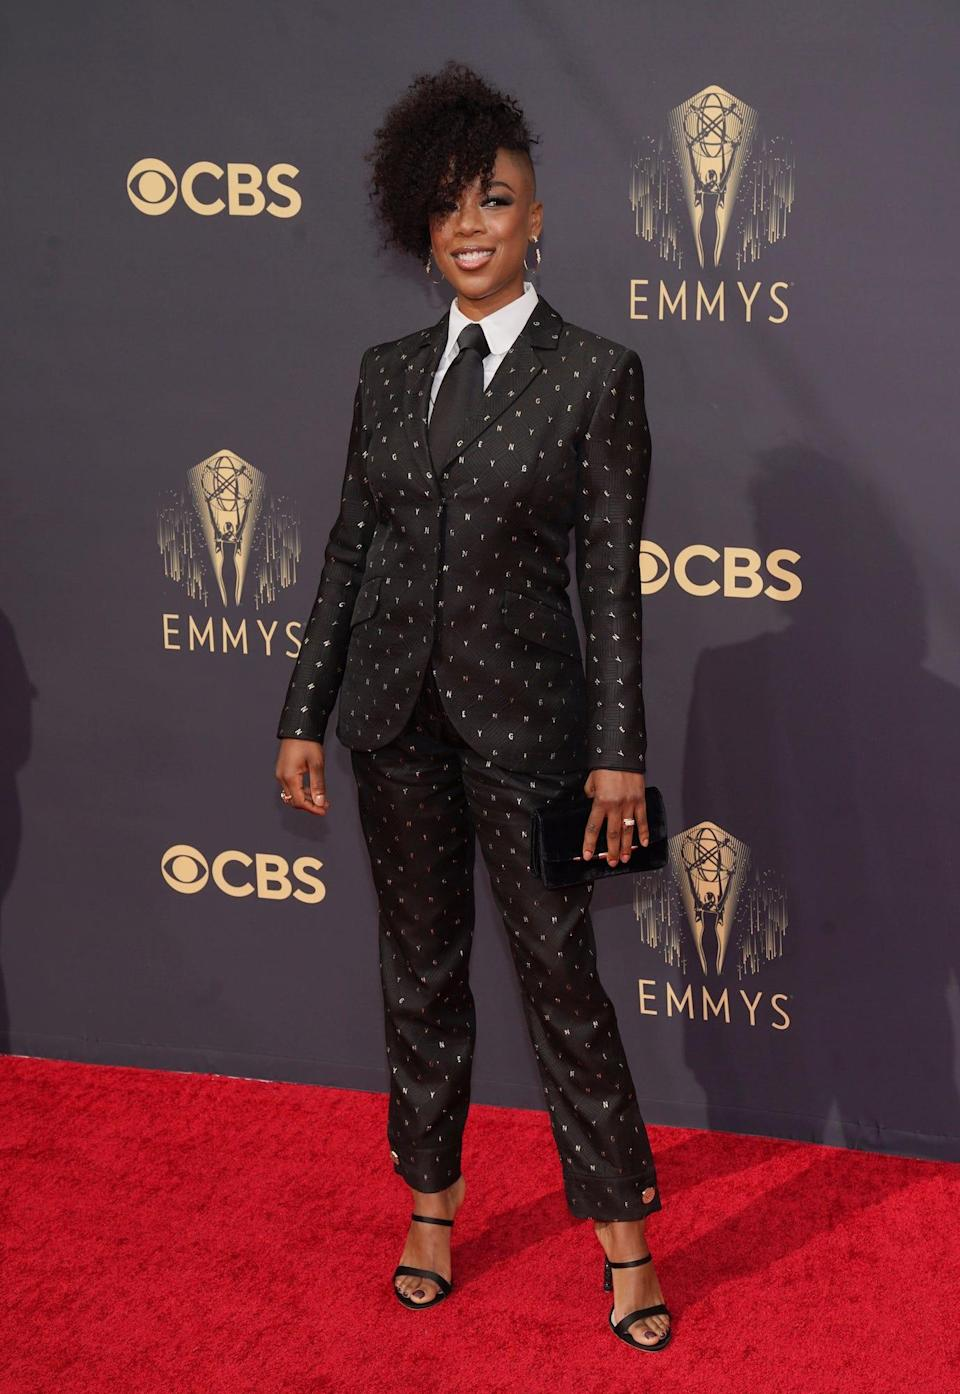 Samira Wiley at the 2021 Emmys.